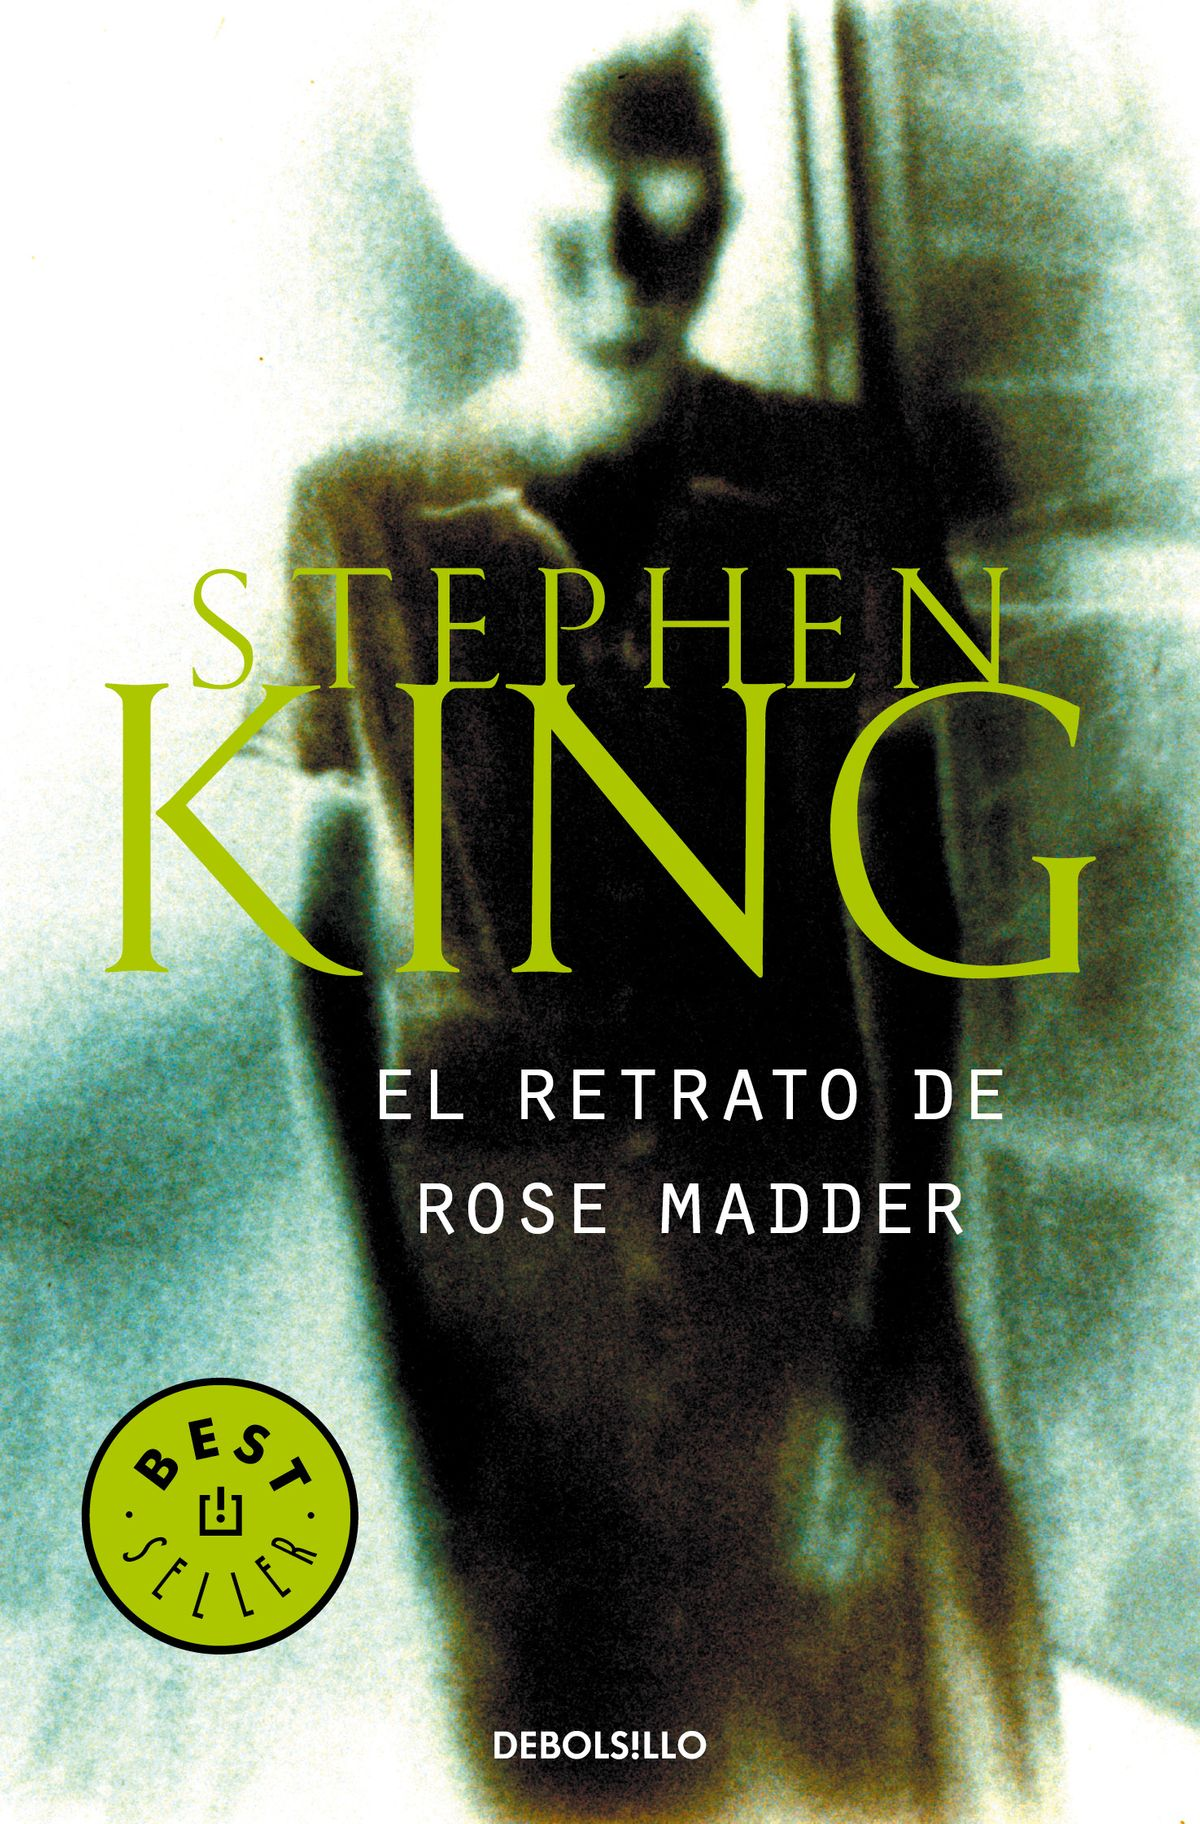 El retrato de Rose Madder de Stephen King